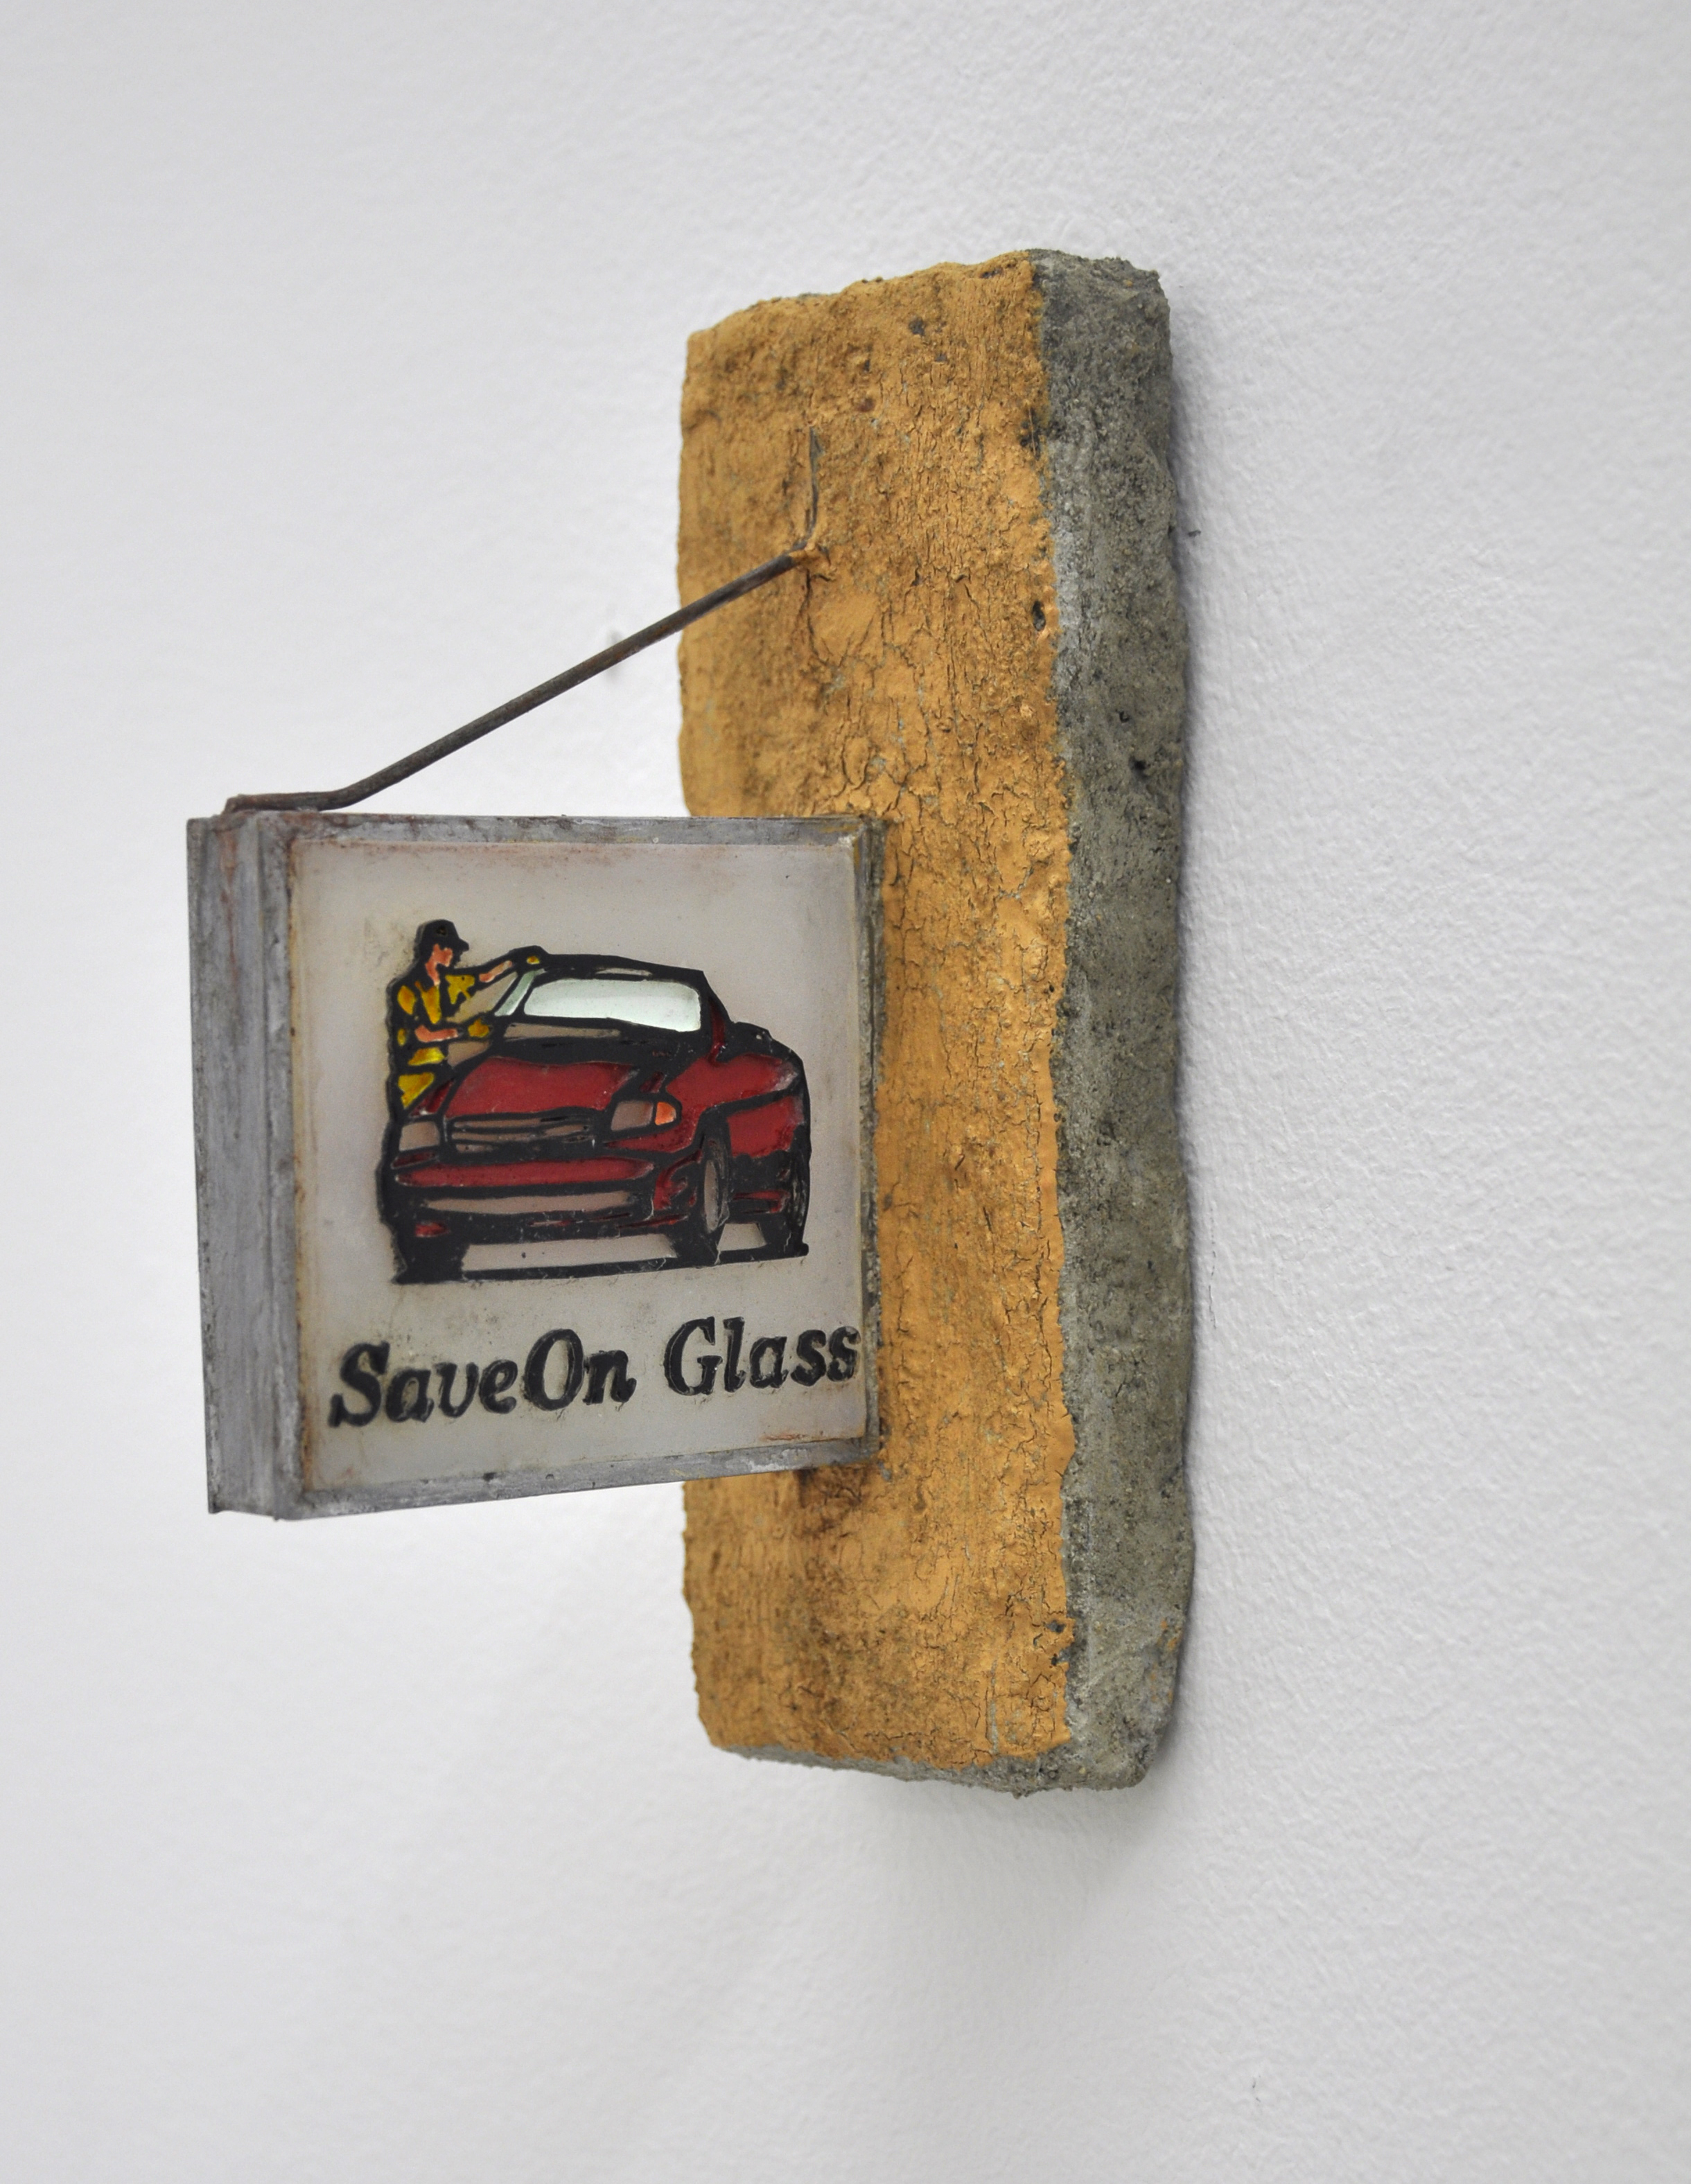 Malcolm Kenter, Save On Glass, 2019, Enamel on Plastic, Metal and Concrete, 7 x 2.5 x 5in